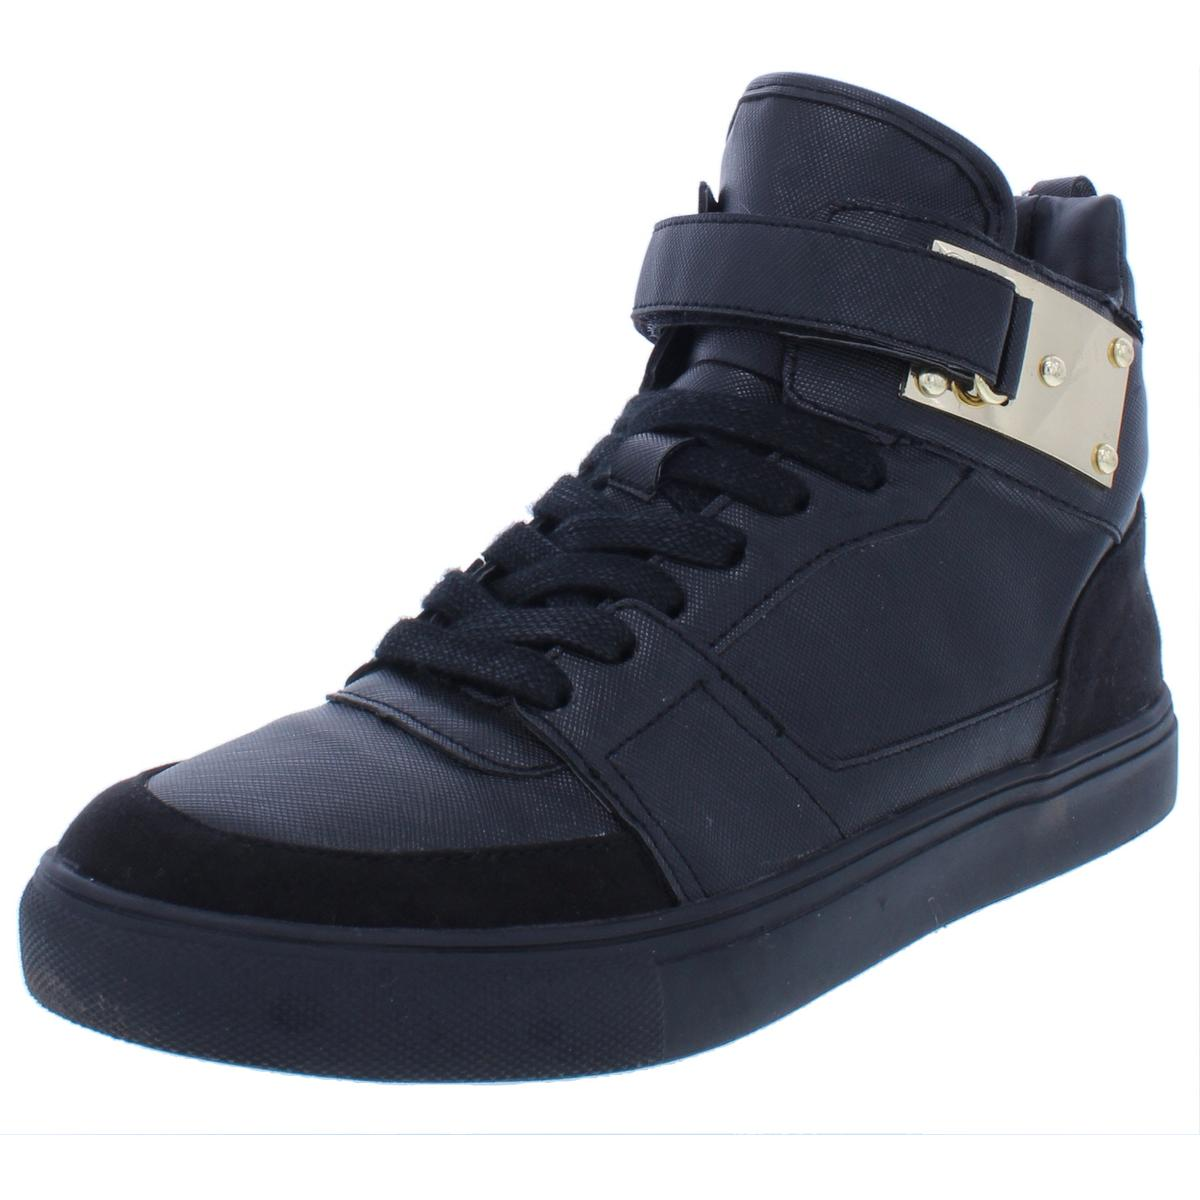 3122f2ab8e1 Details about Madden Girl by Steve Madden Womens Adorree Fashion Sneakers 7  Medium (B